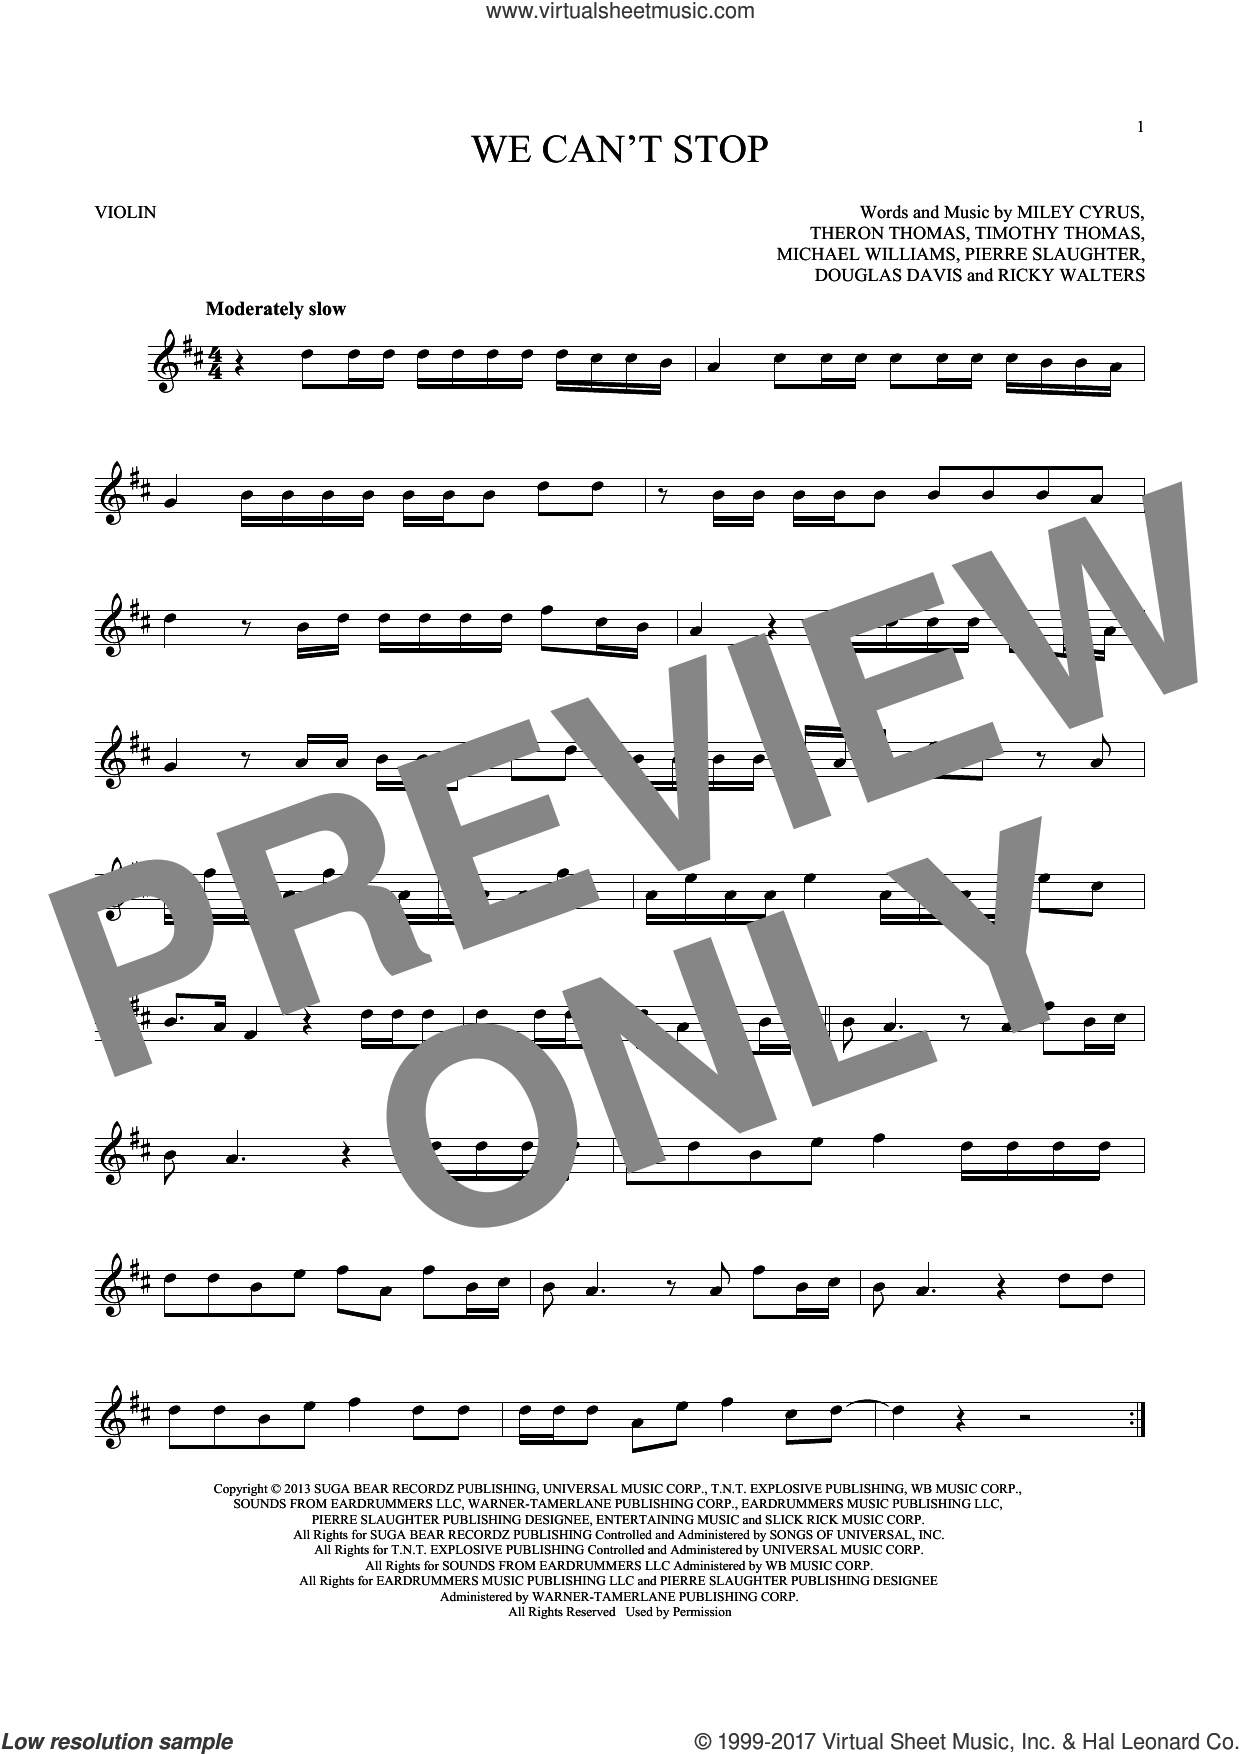 We Can't Stop sheet music for violin solo by Miley Cyrus, Douglas Davis, Michael Williams, Pierre Slaughter, Ricky Walters, Theron Thomas and Timmy Thomas, intermediate skill level